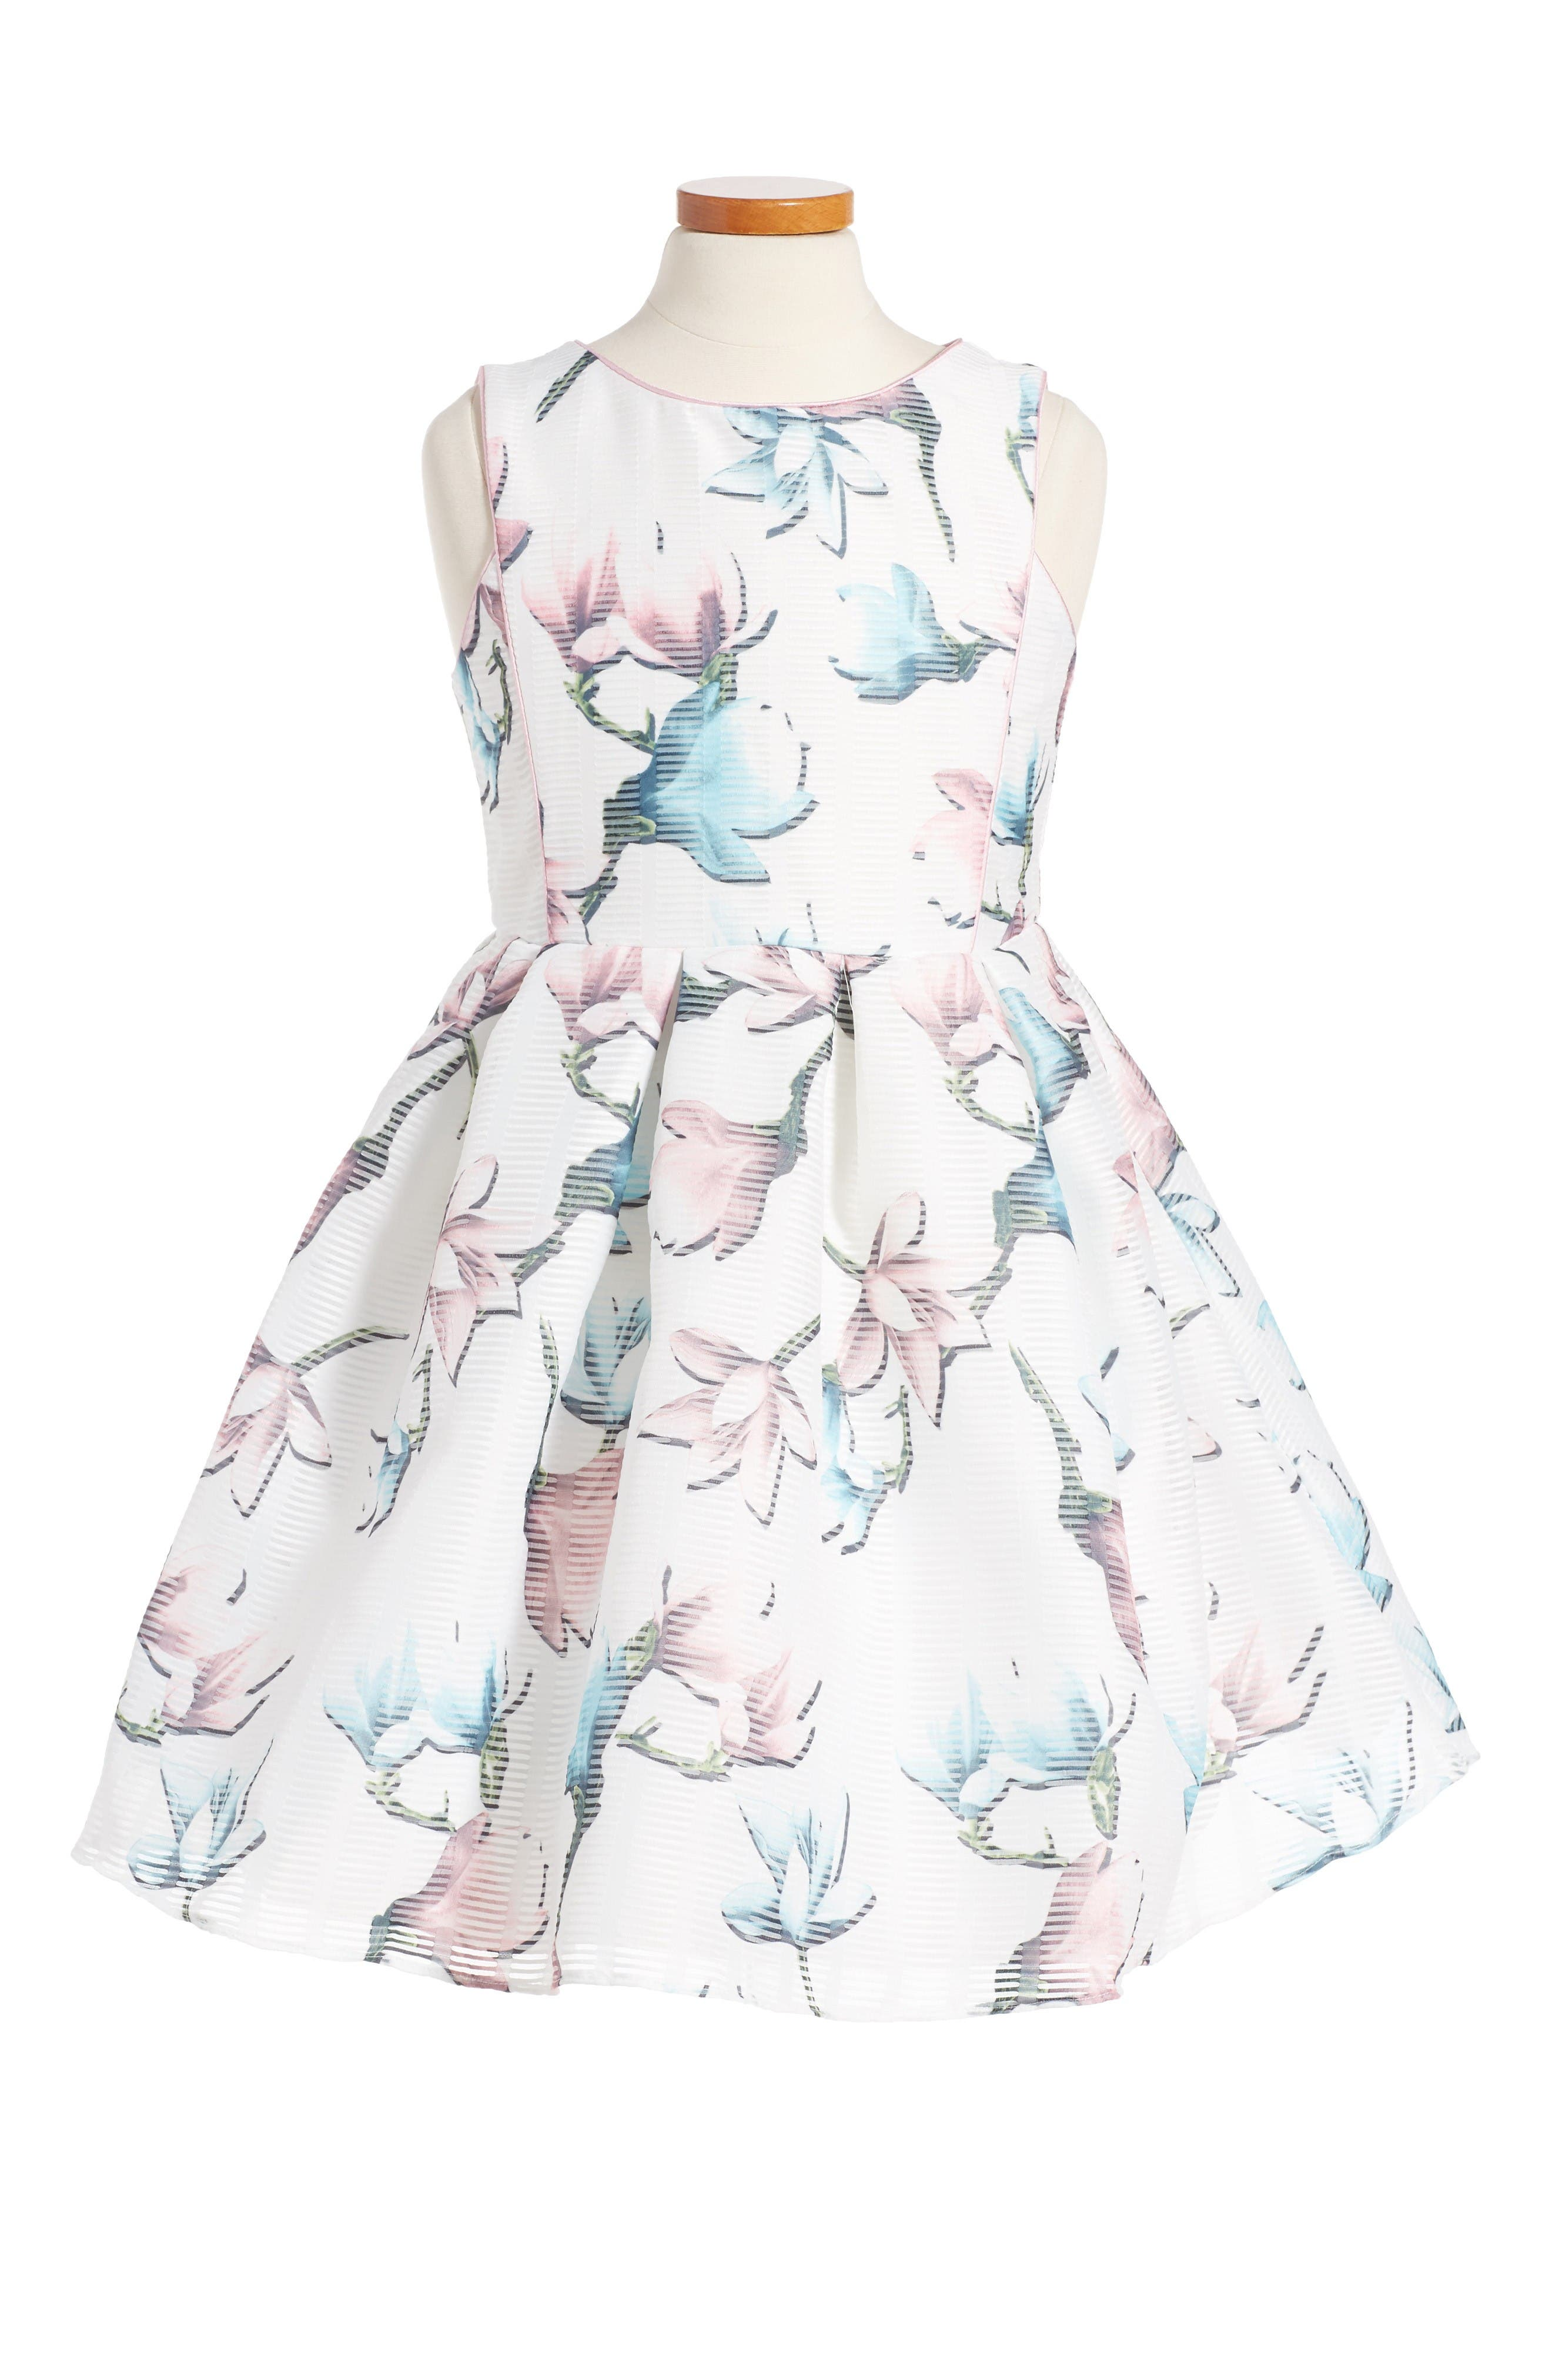 PIPPA & JULIE Floral Print Sleeveless Dress